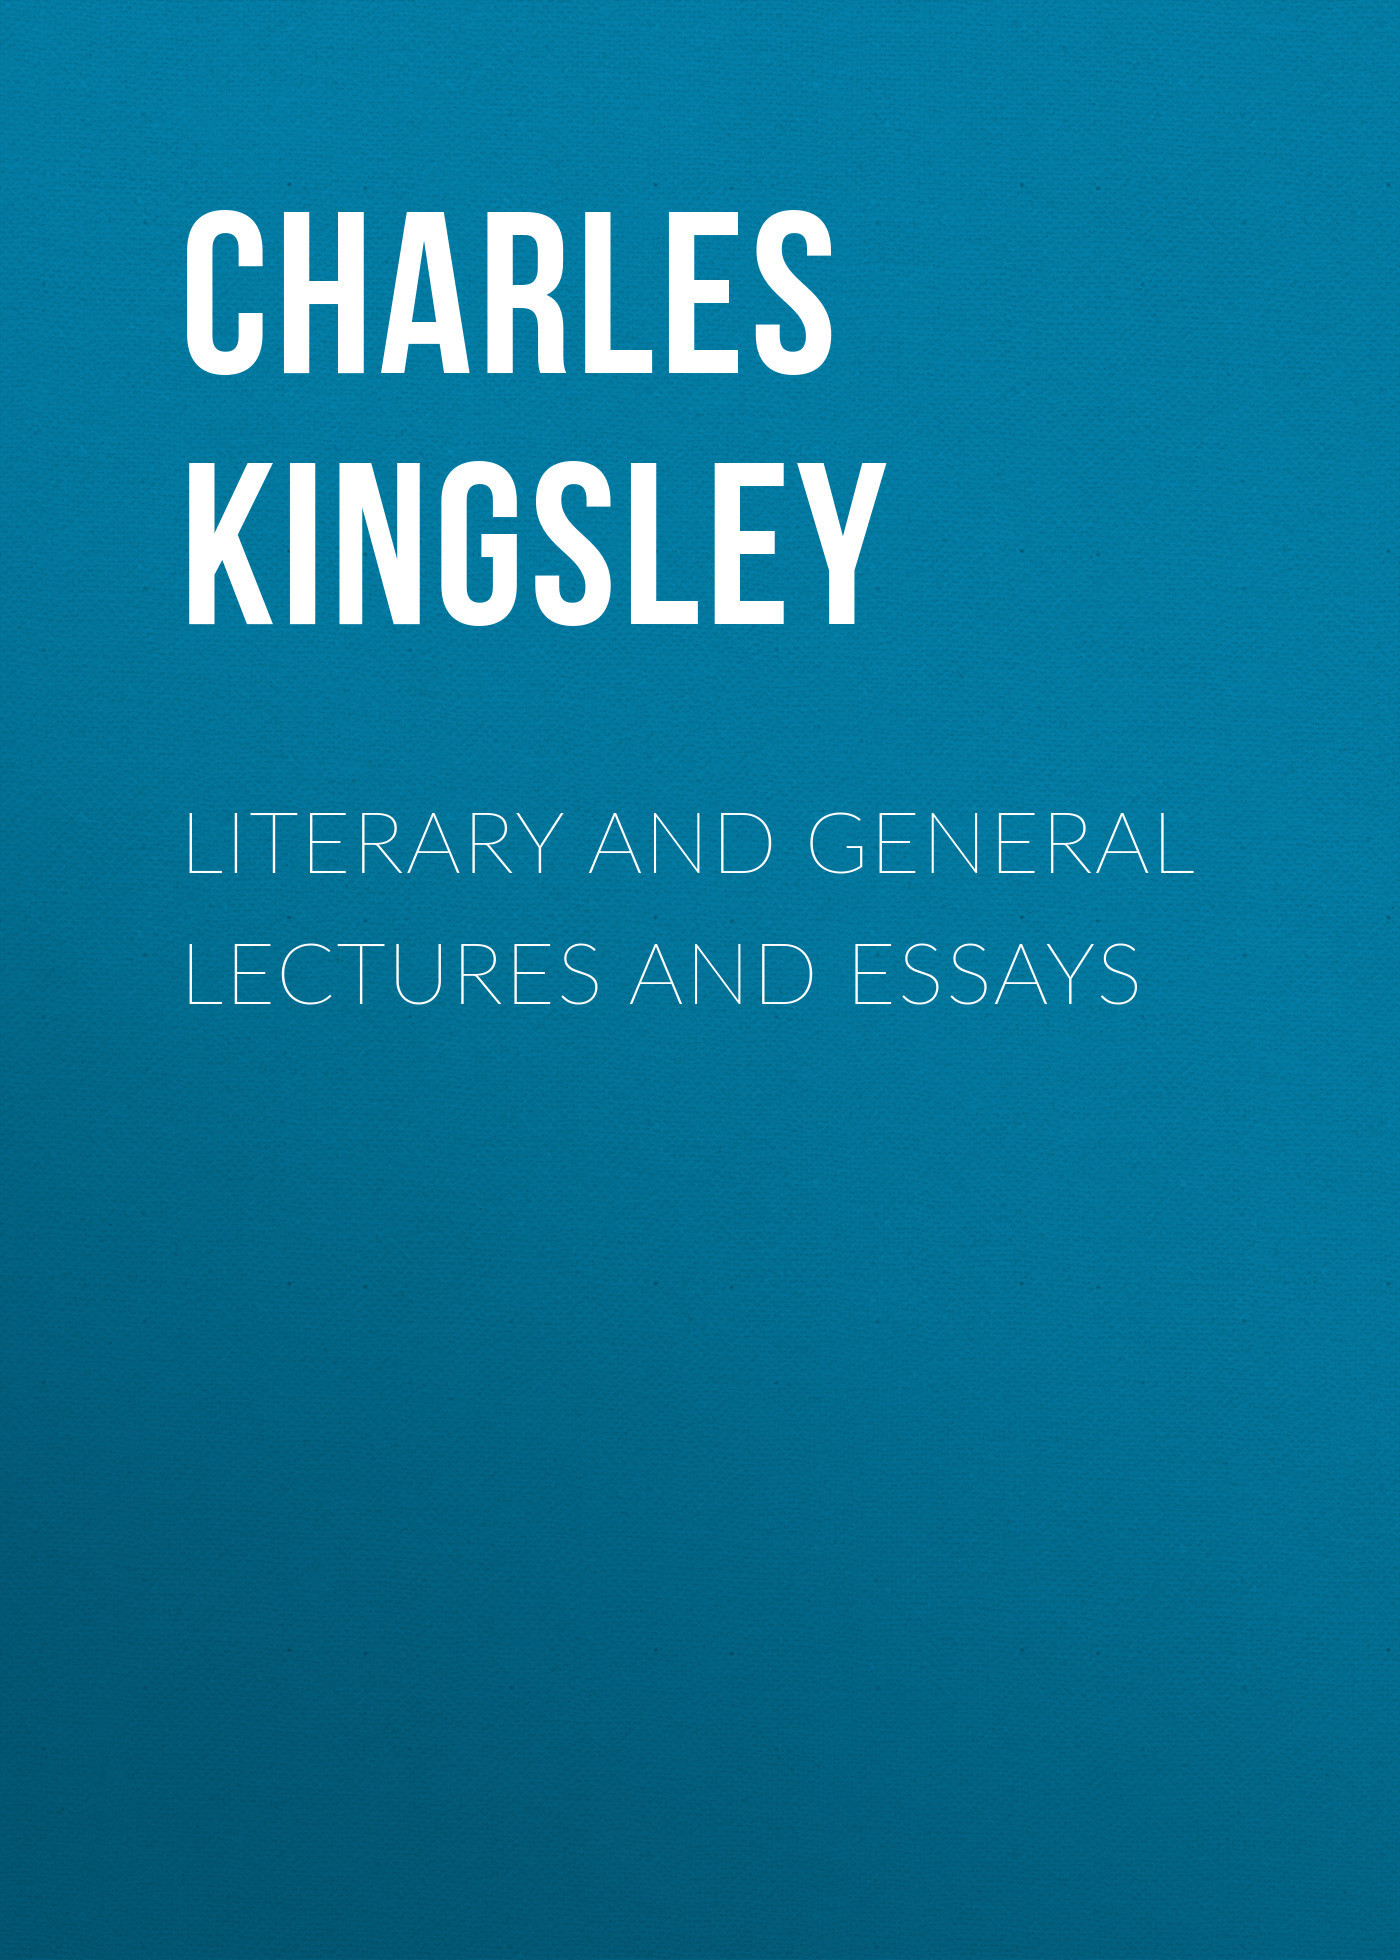 Charles Kingsley Literary and General Lectures and Essays hugh blair lectures on rhetoric and belles lettres vol 3